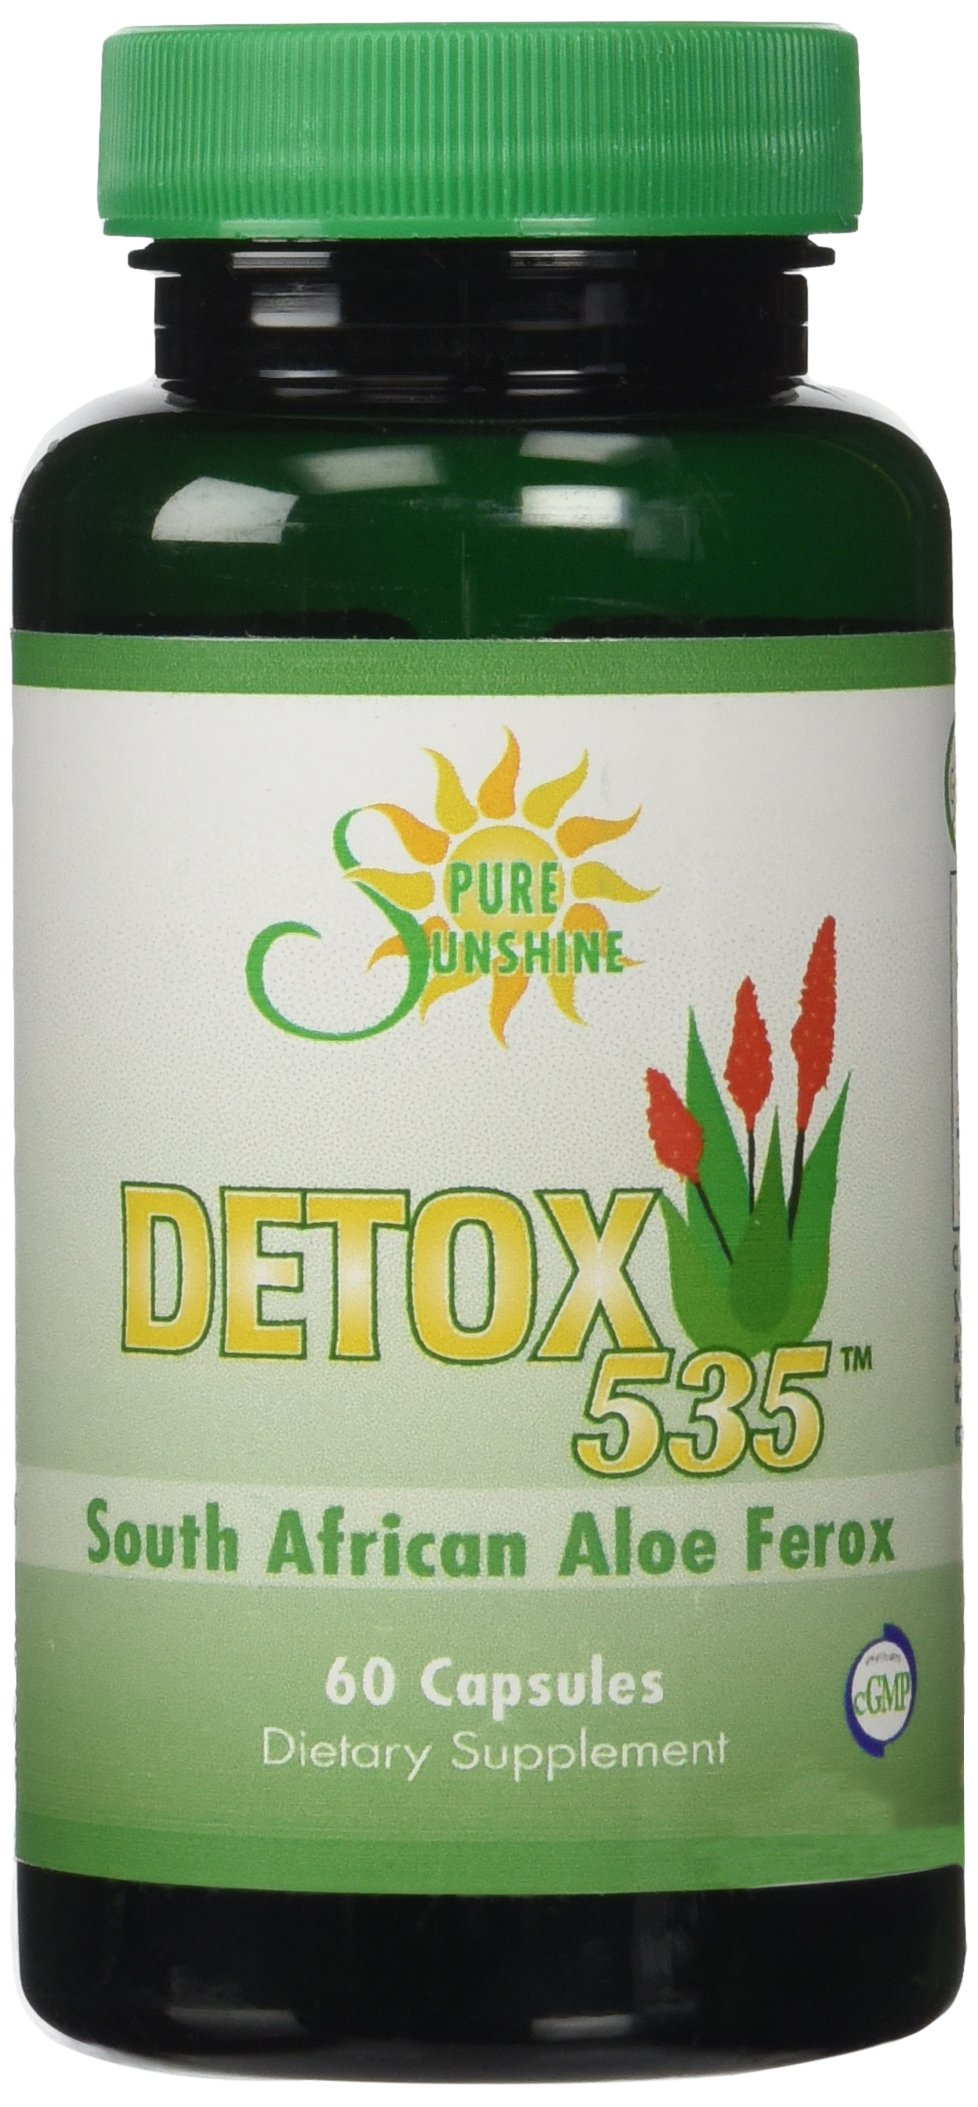 DETOX 535 South African Cape Aloe Ferox Pills- Natural Laxative by  Pure Sunshine Supplements